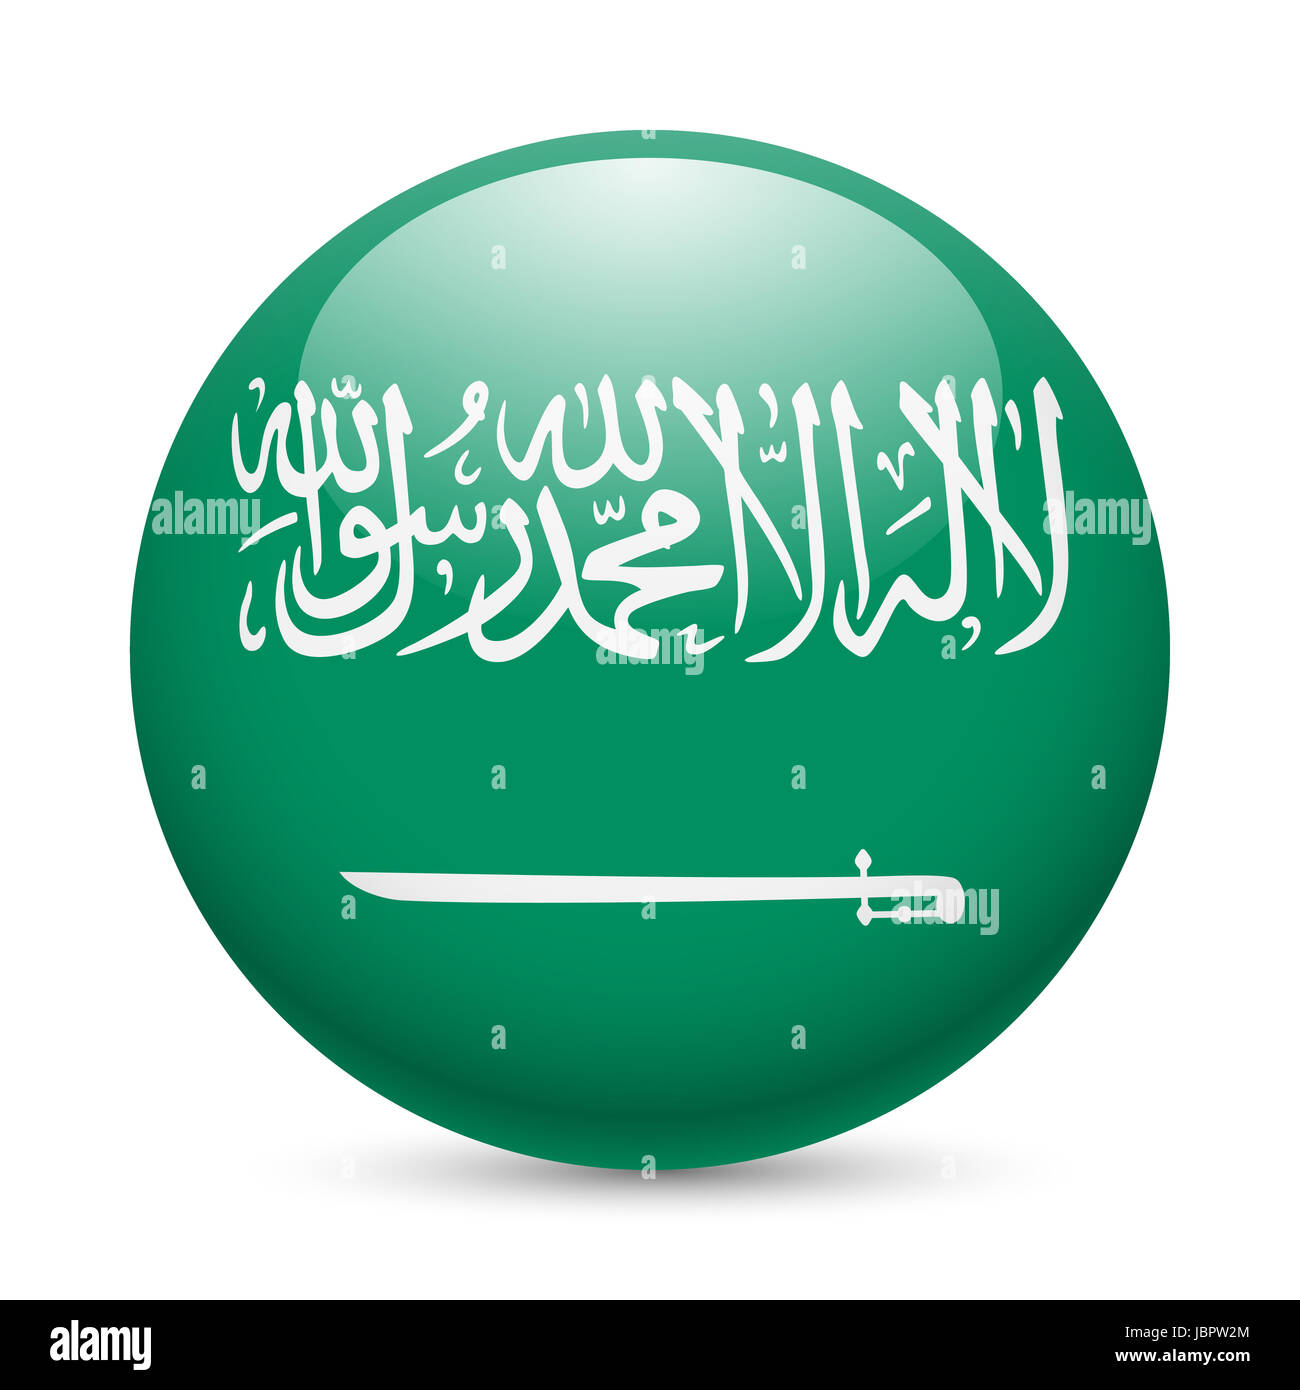 Flag of Saudi Arabia as round glossy icon. Button with flag design - Stock Image